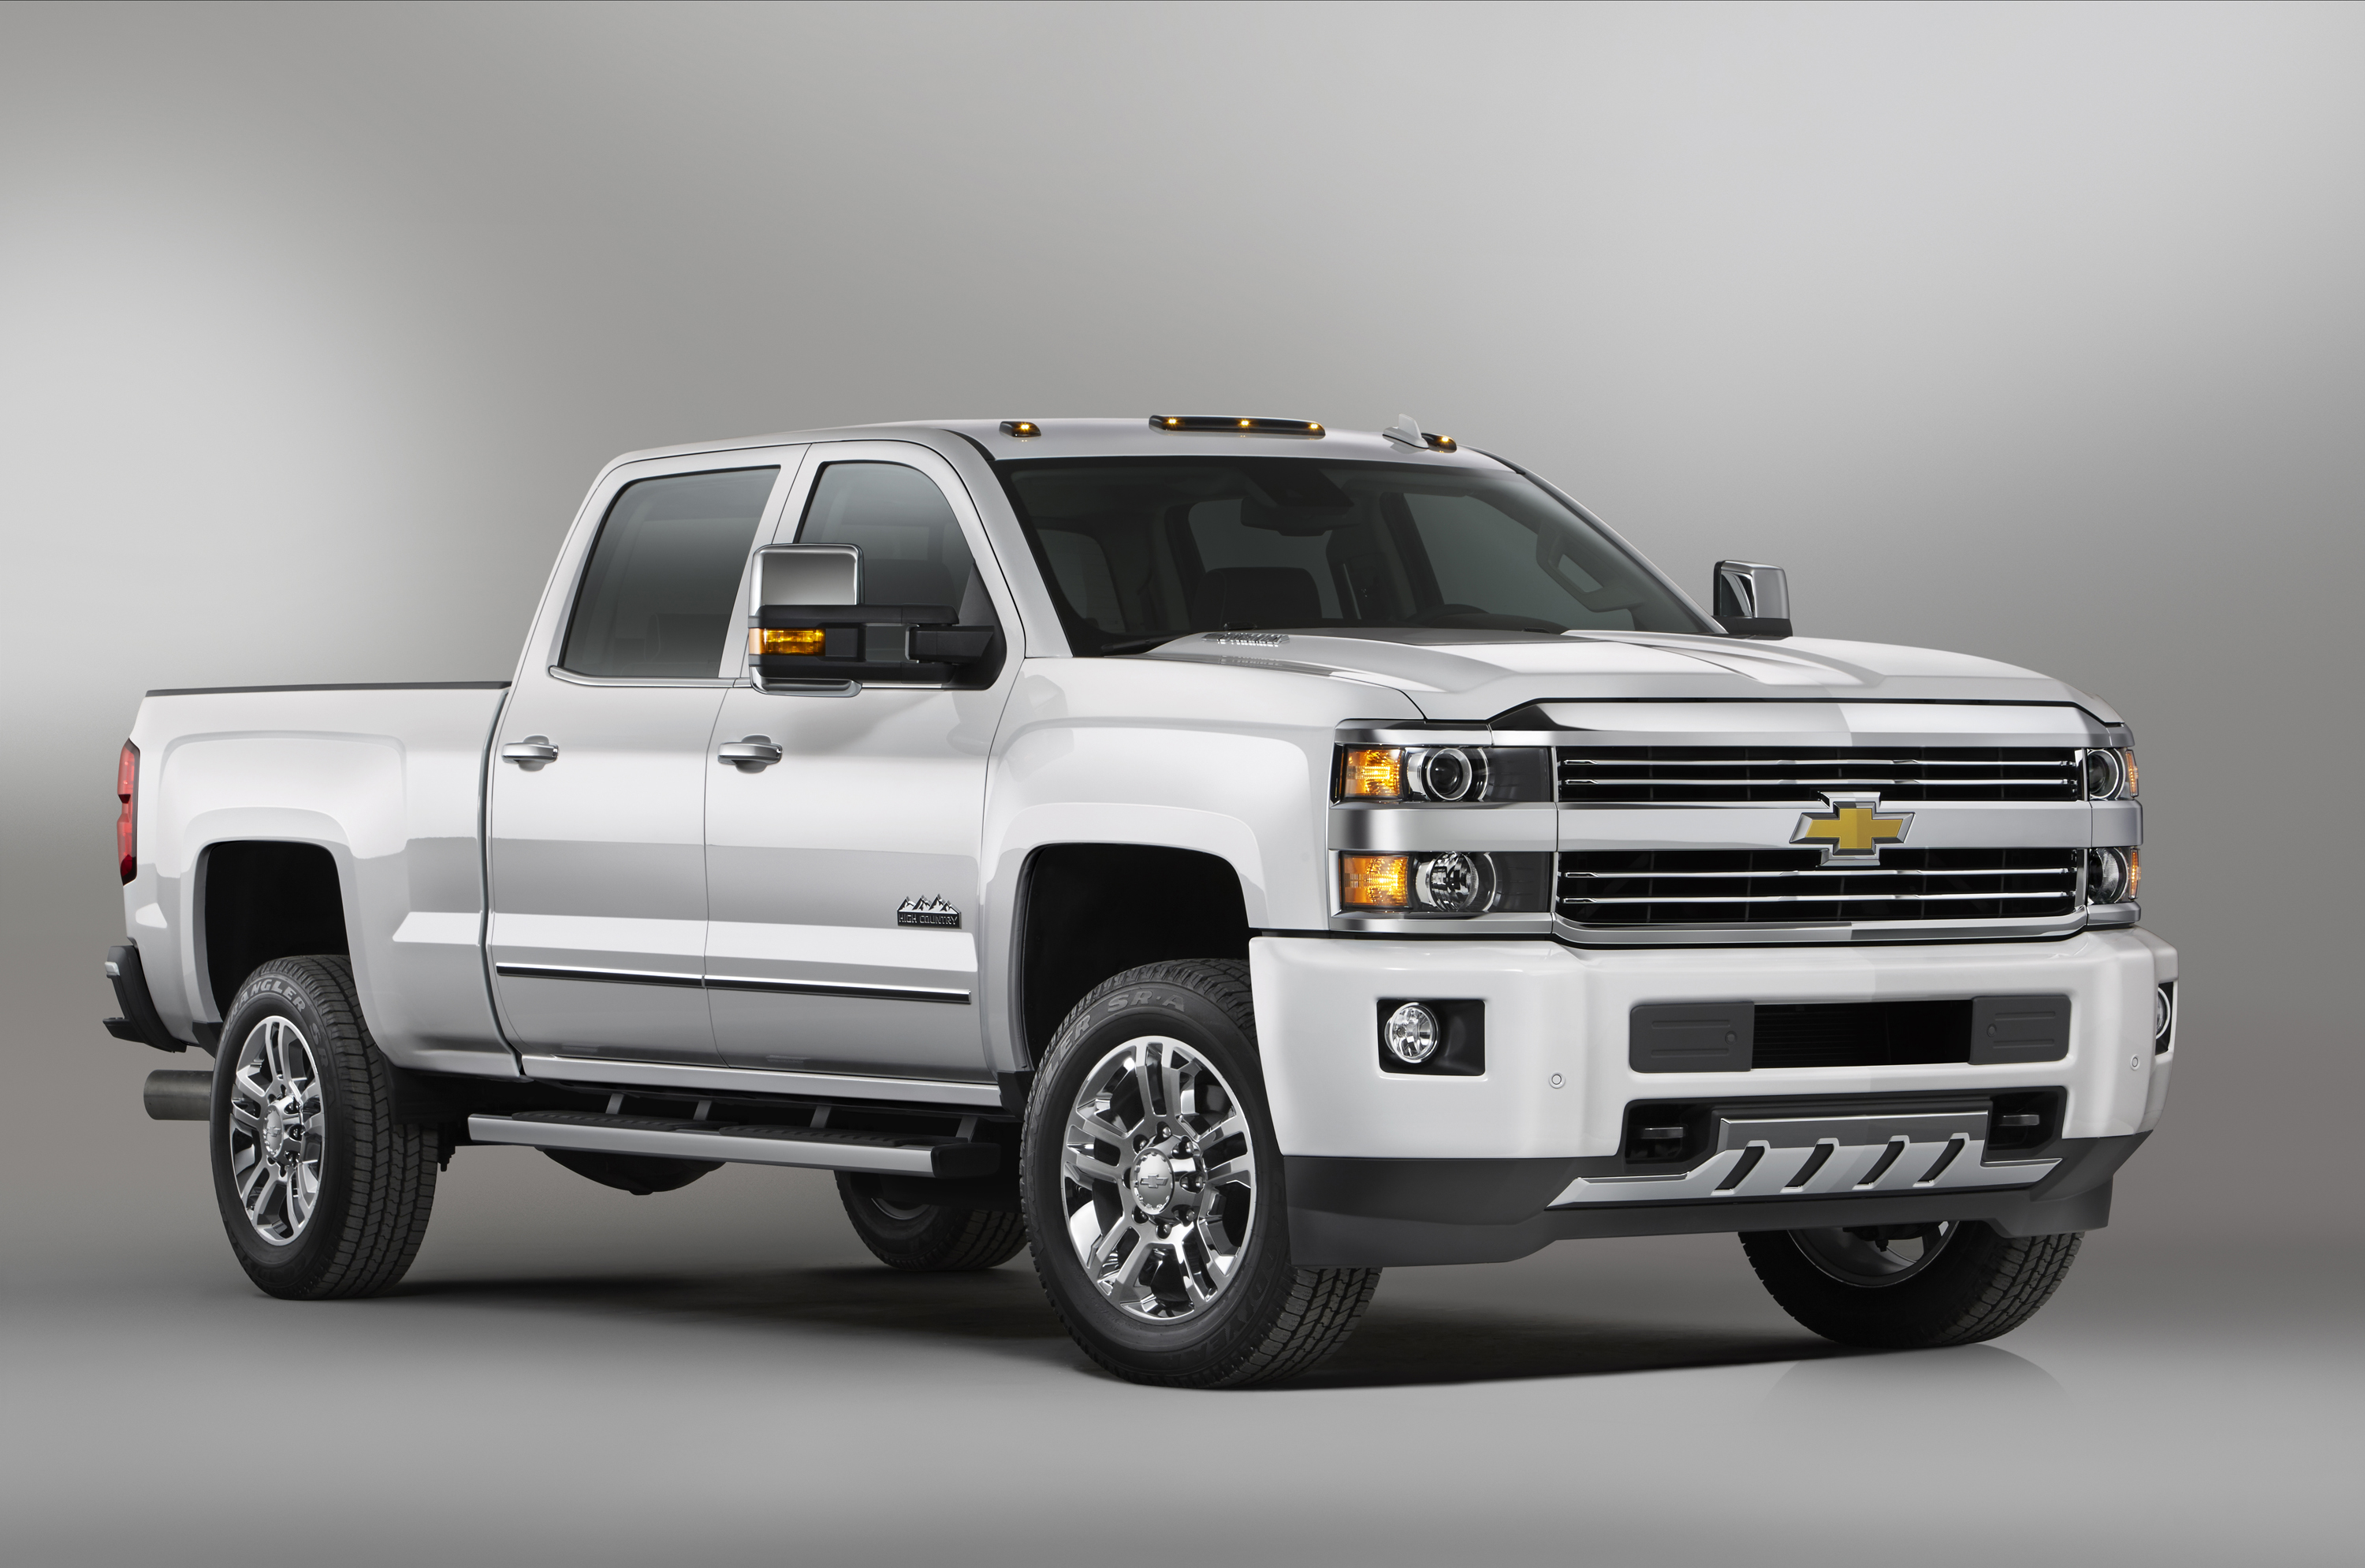 2015 Chevrolet Silverado 2500 HD Aces Frame Twist Test, Beats Ford F